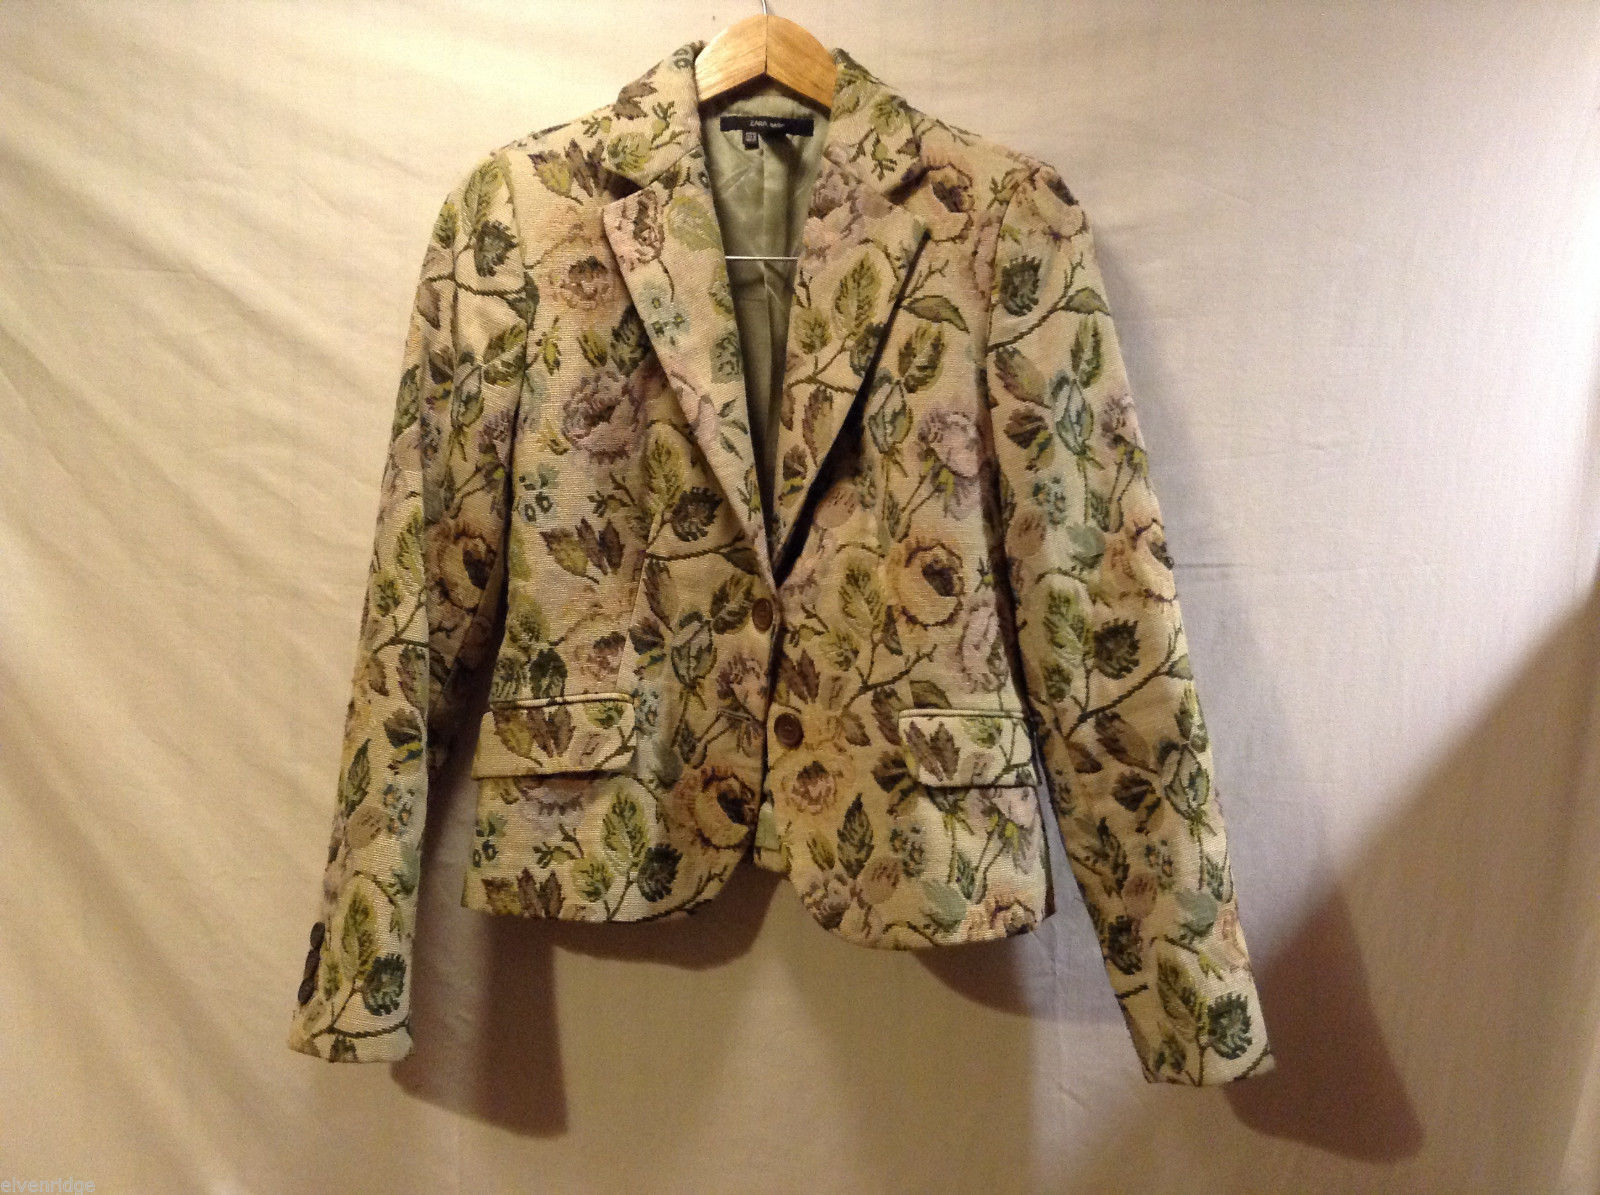 ZARA Basic Beige Light Green Floral Pattern Blazer Jacket Top, Size 10, lined